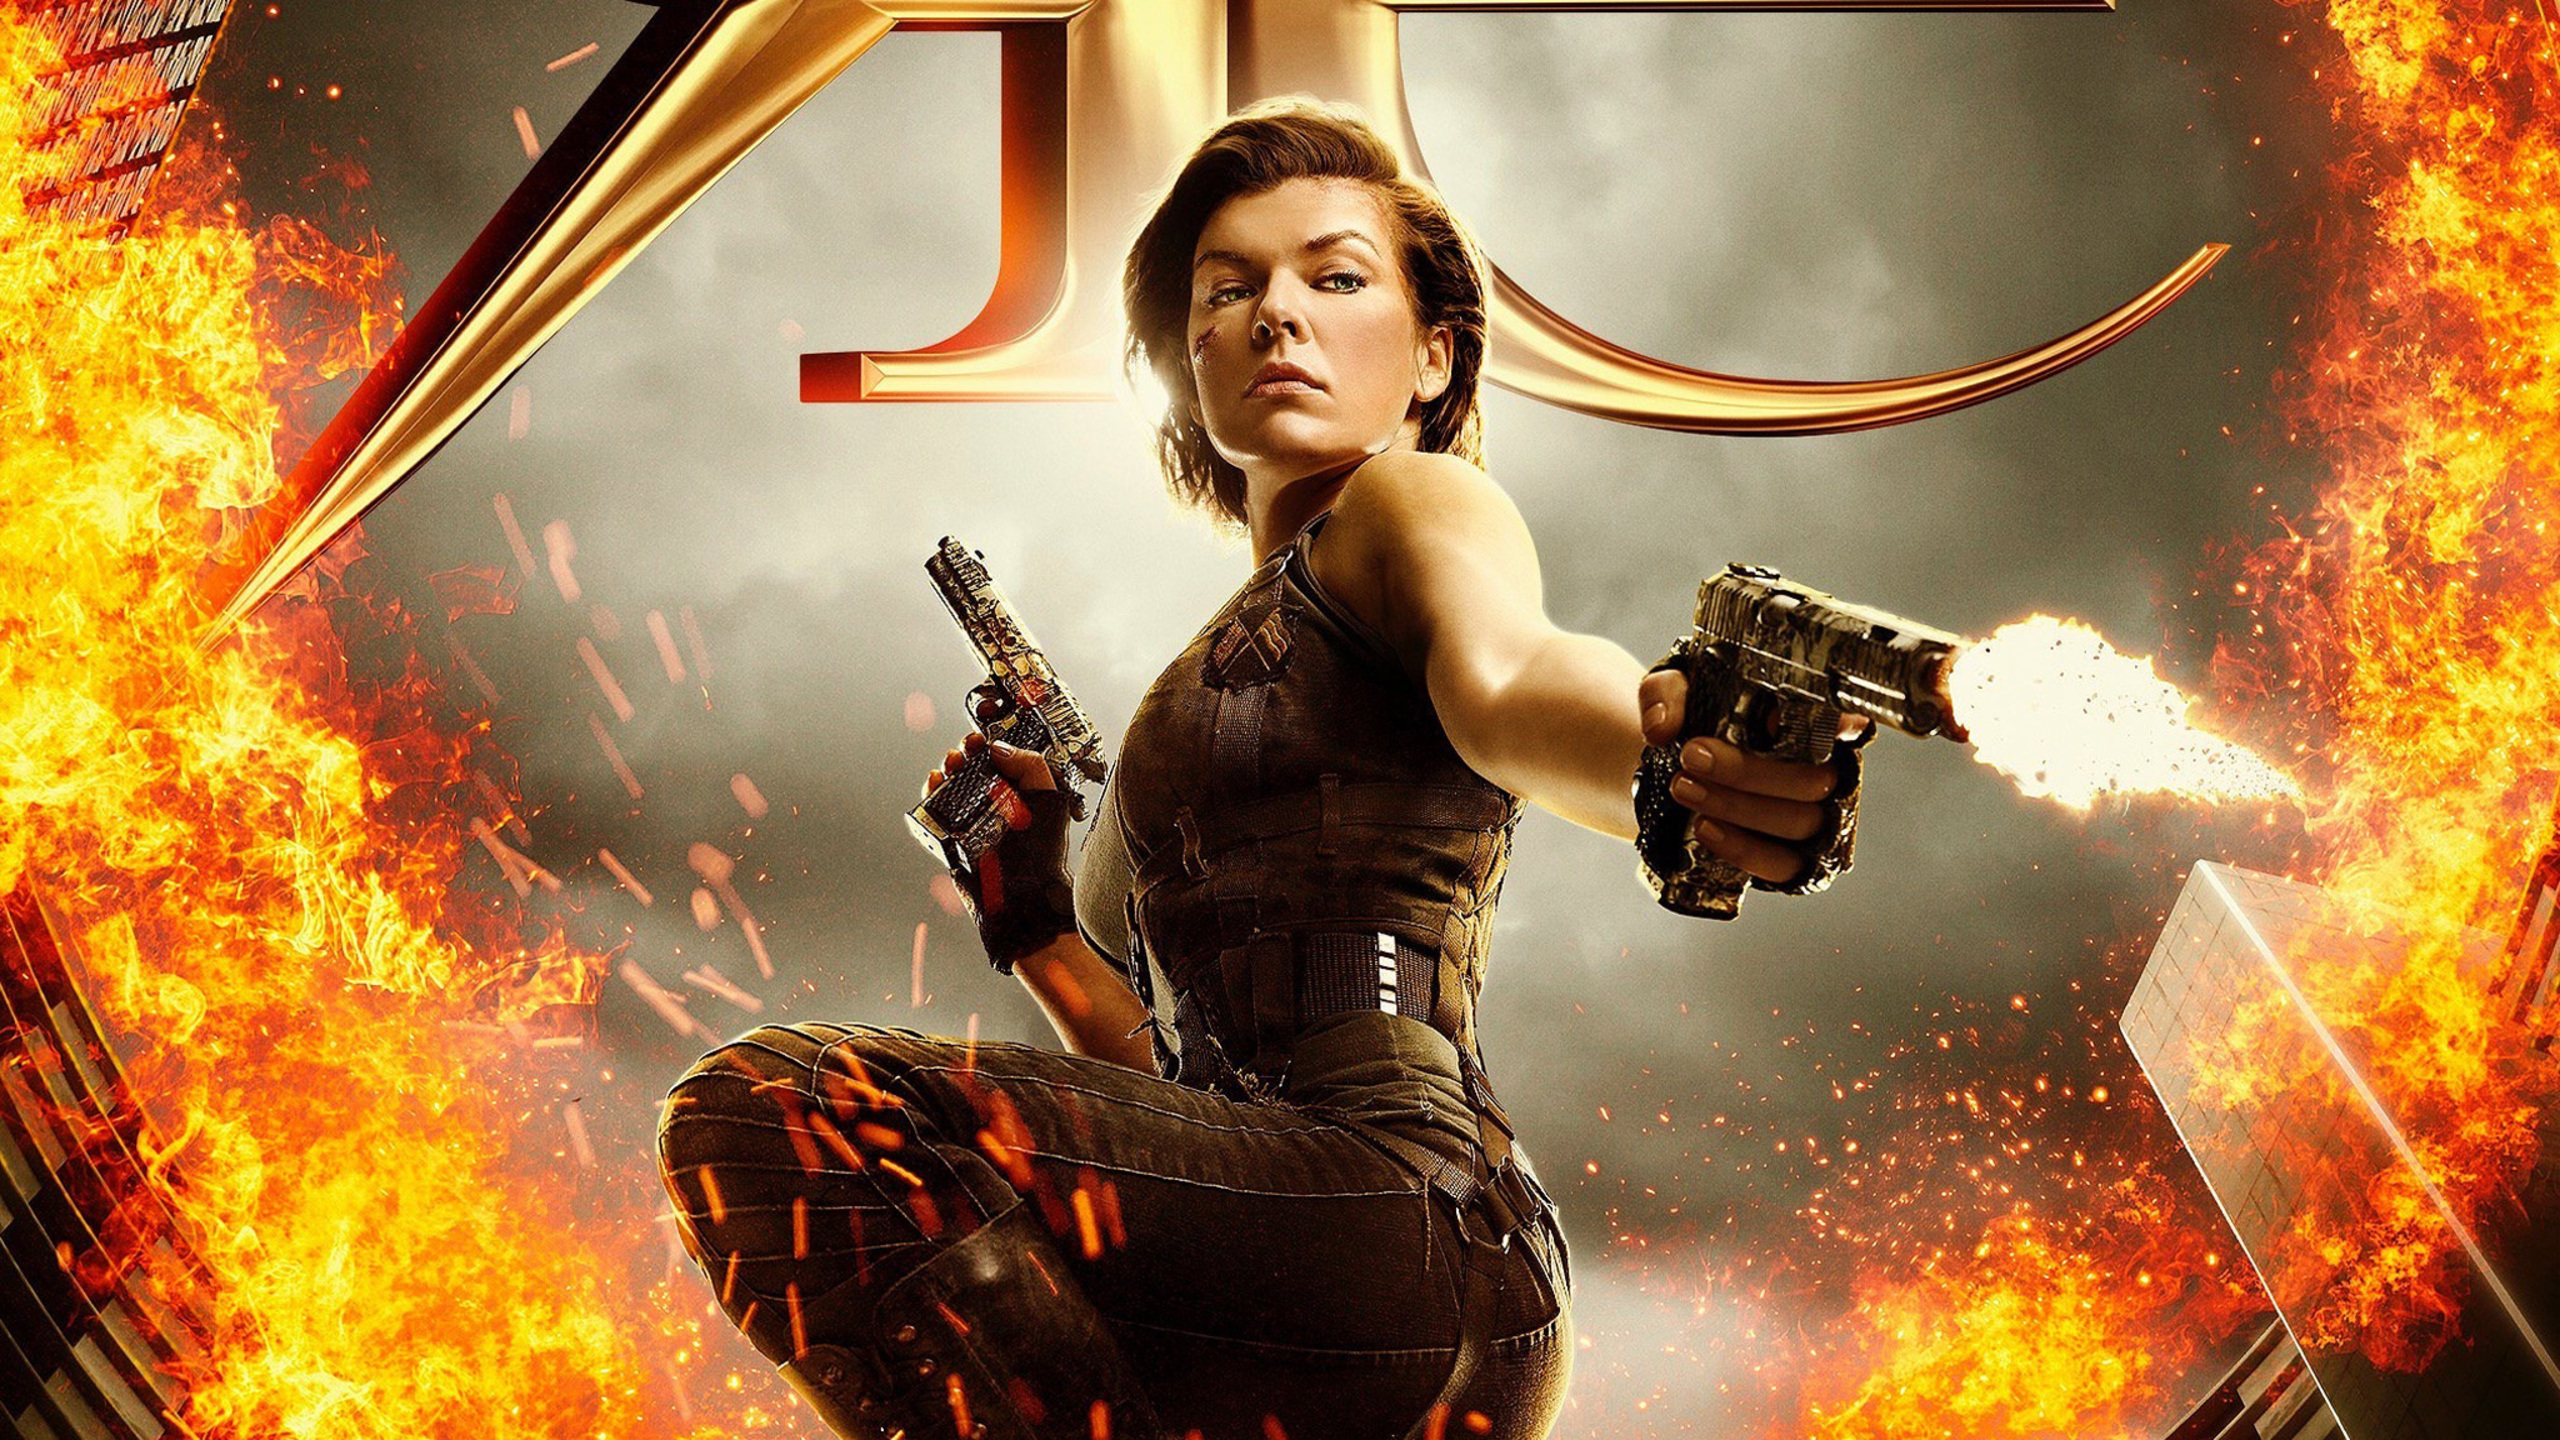 Resident Evil The Final Chapter 2016 Movie Hd Wallpaper: 2560x1440 Resident Evil 6 The Final Chapter 1440P